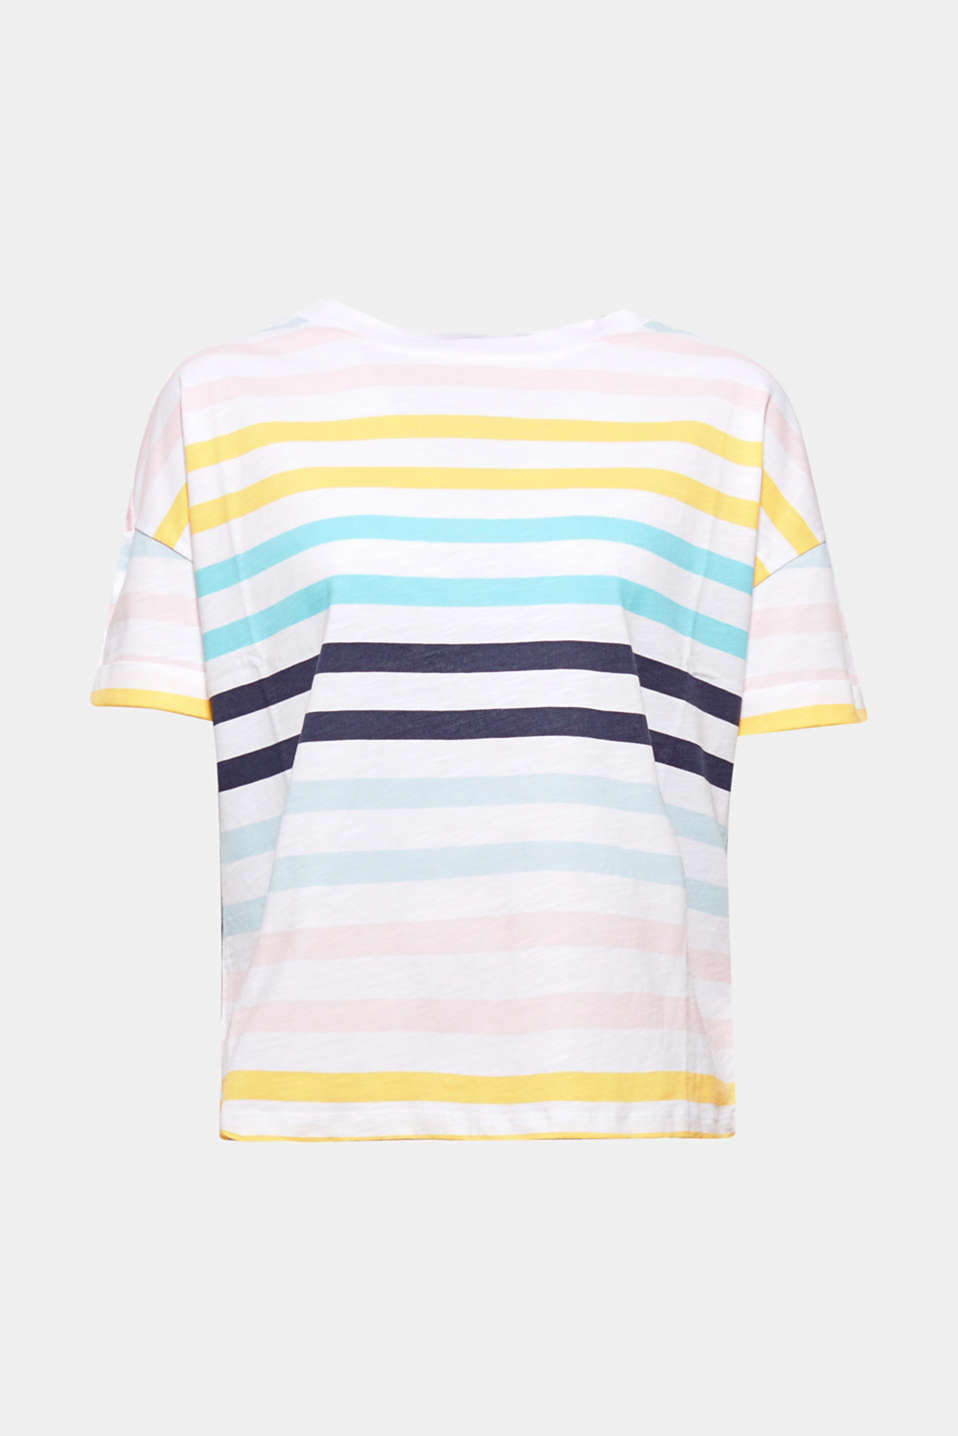 This colourfully striped T-shirt made of soft slub jersey guarantees a fresh, upbeat look! Pure cotton provides ultimate comfort.